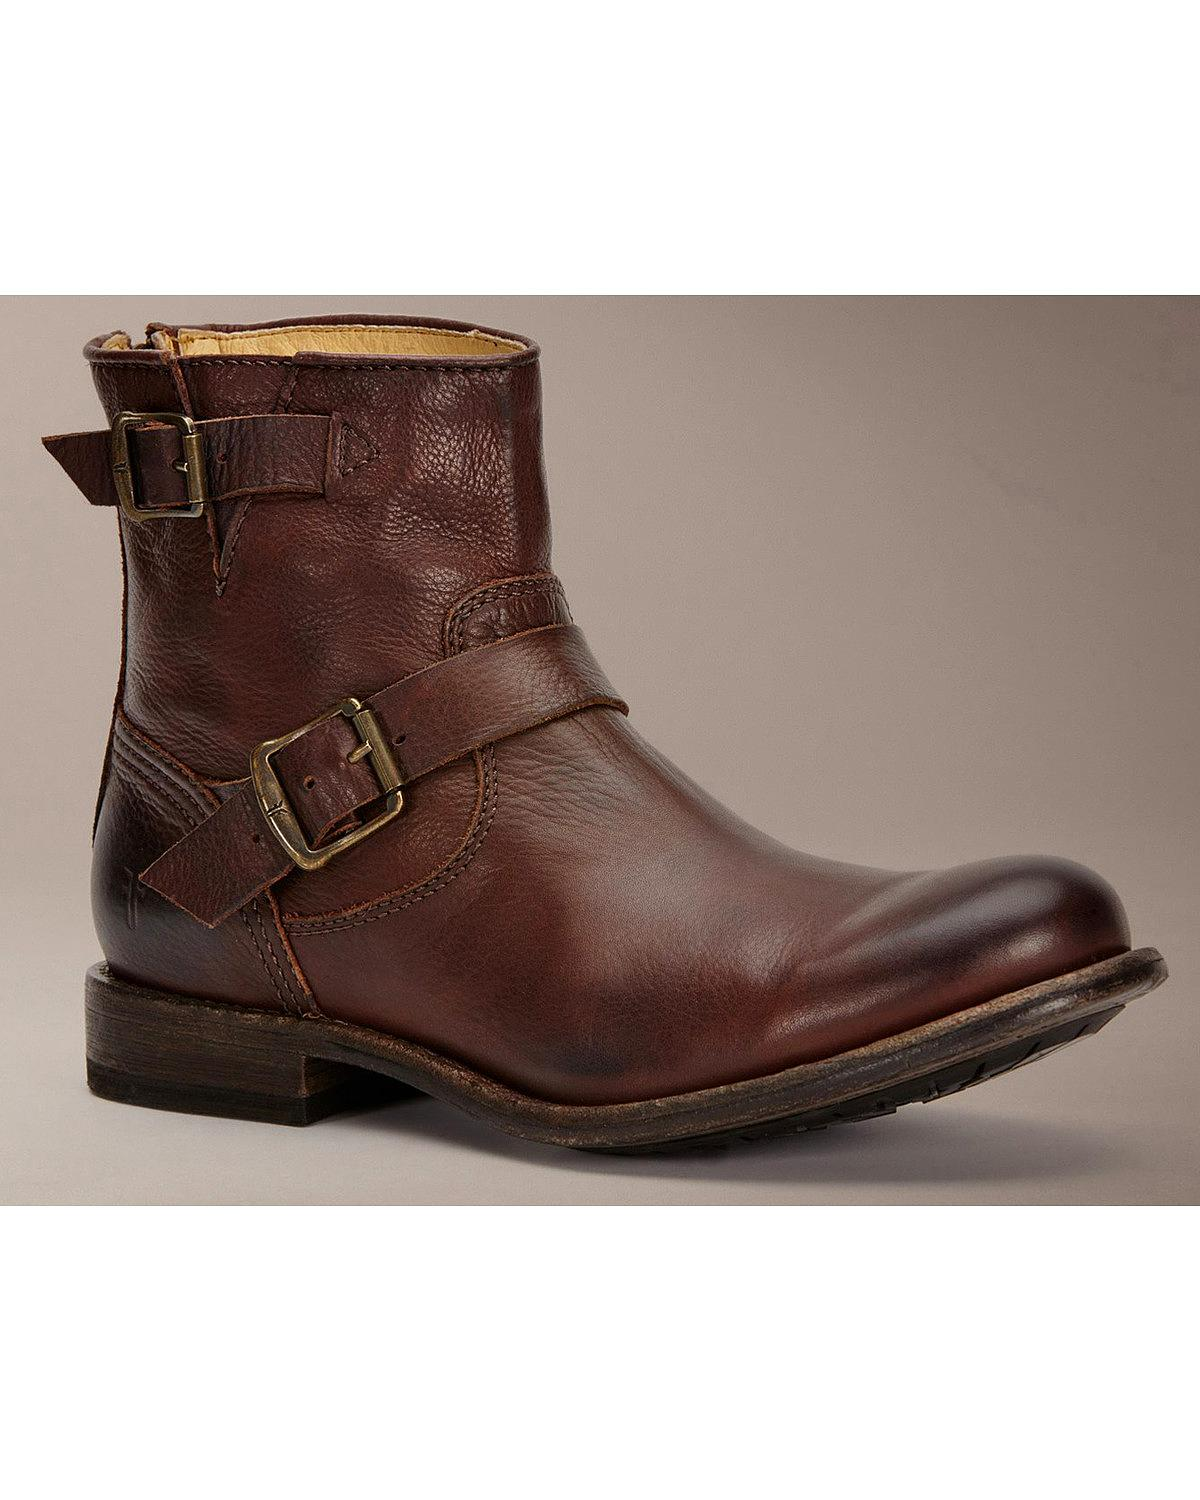 frye s engineer boot 86073 dbn ebay